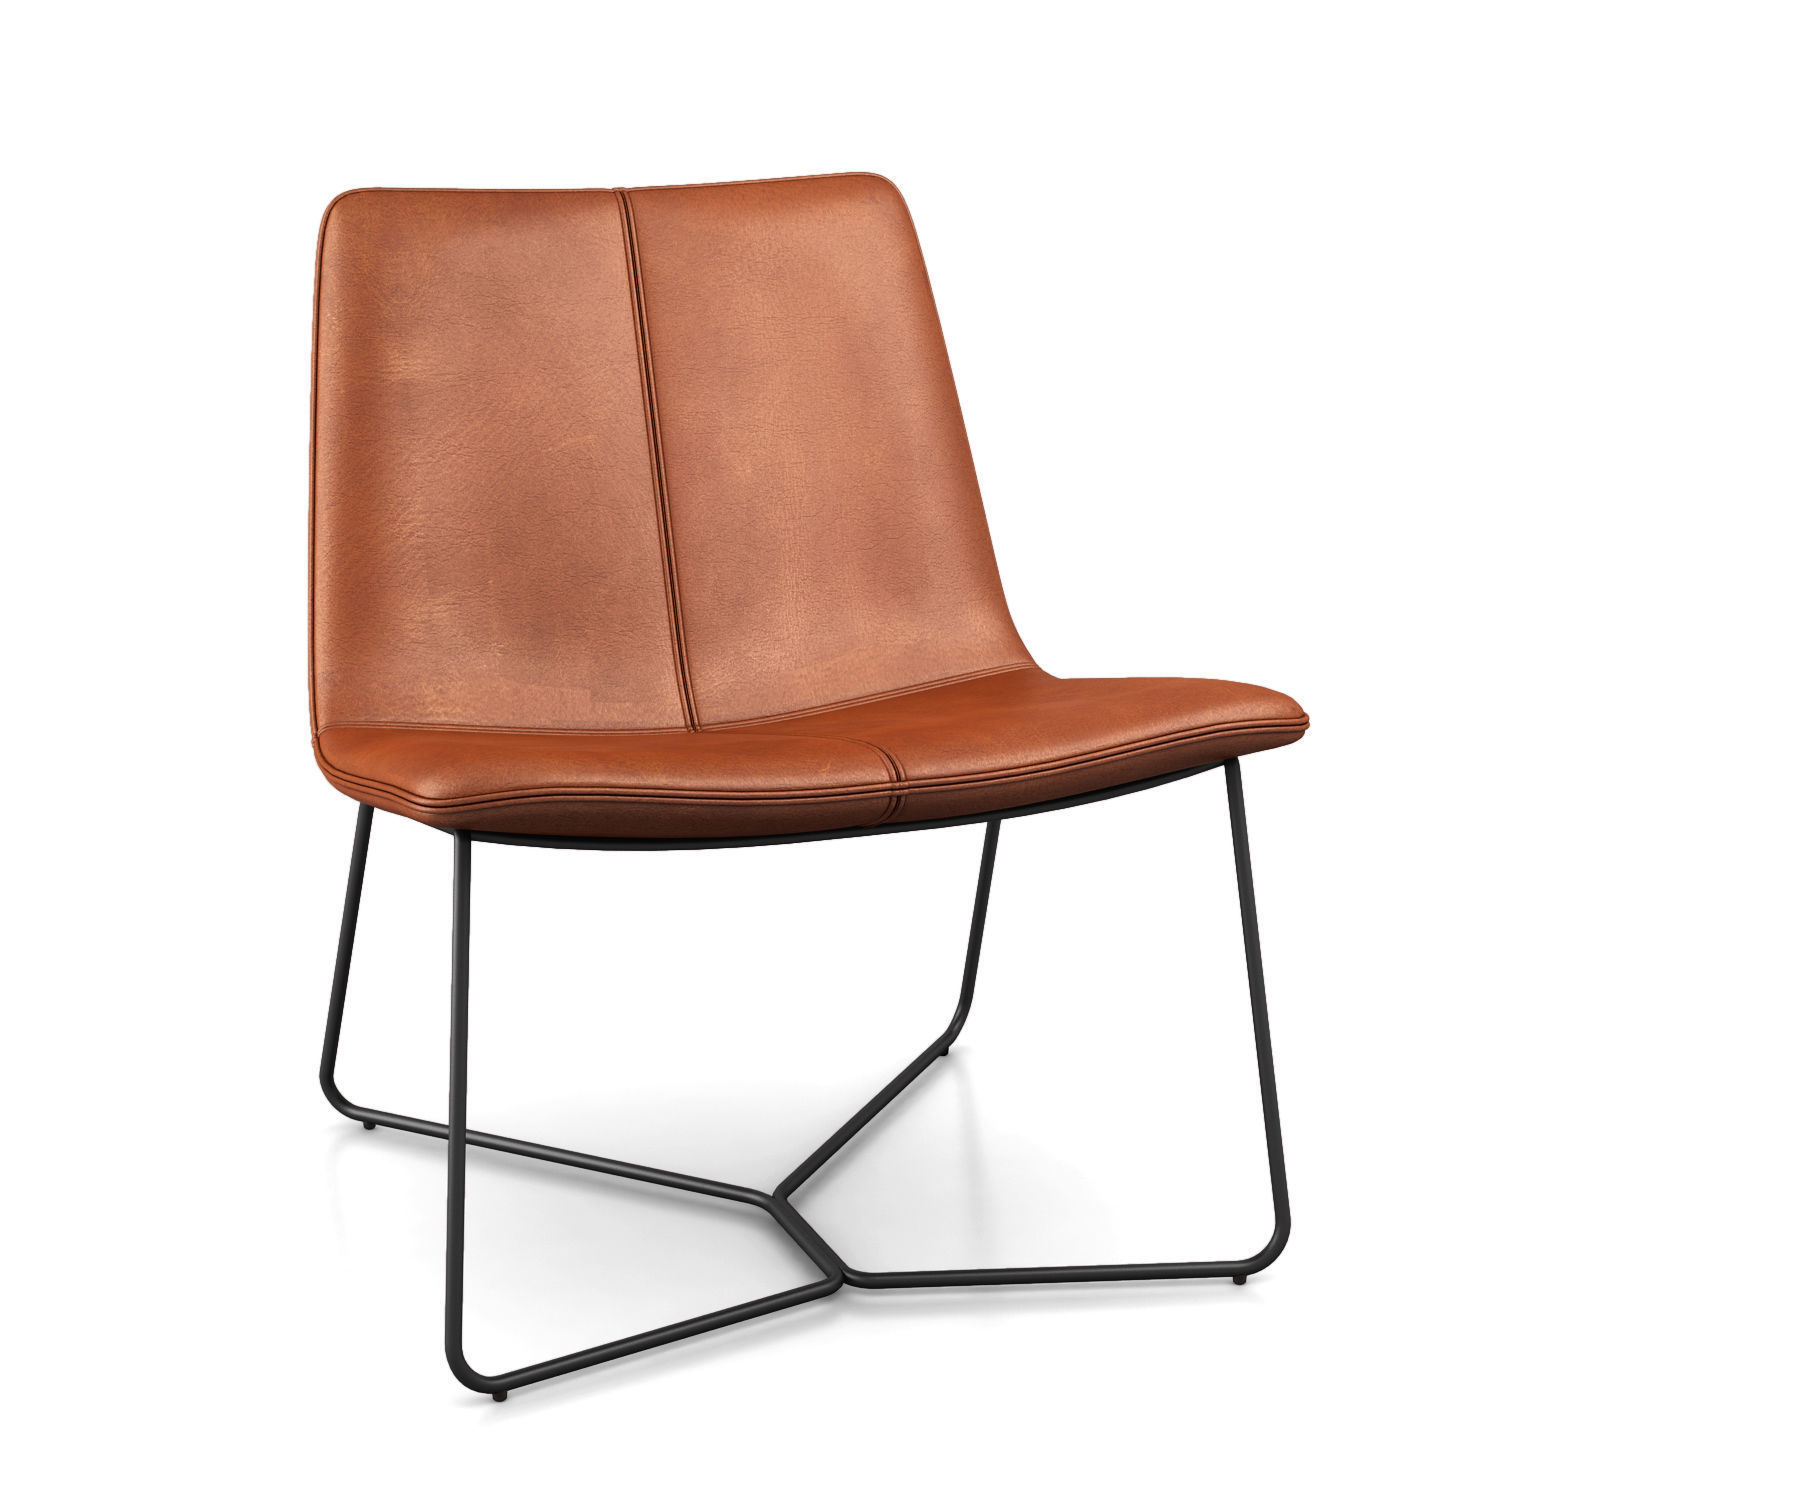 Slope Leather Lounge Chair by West Elm